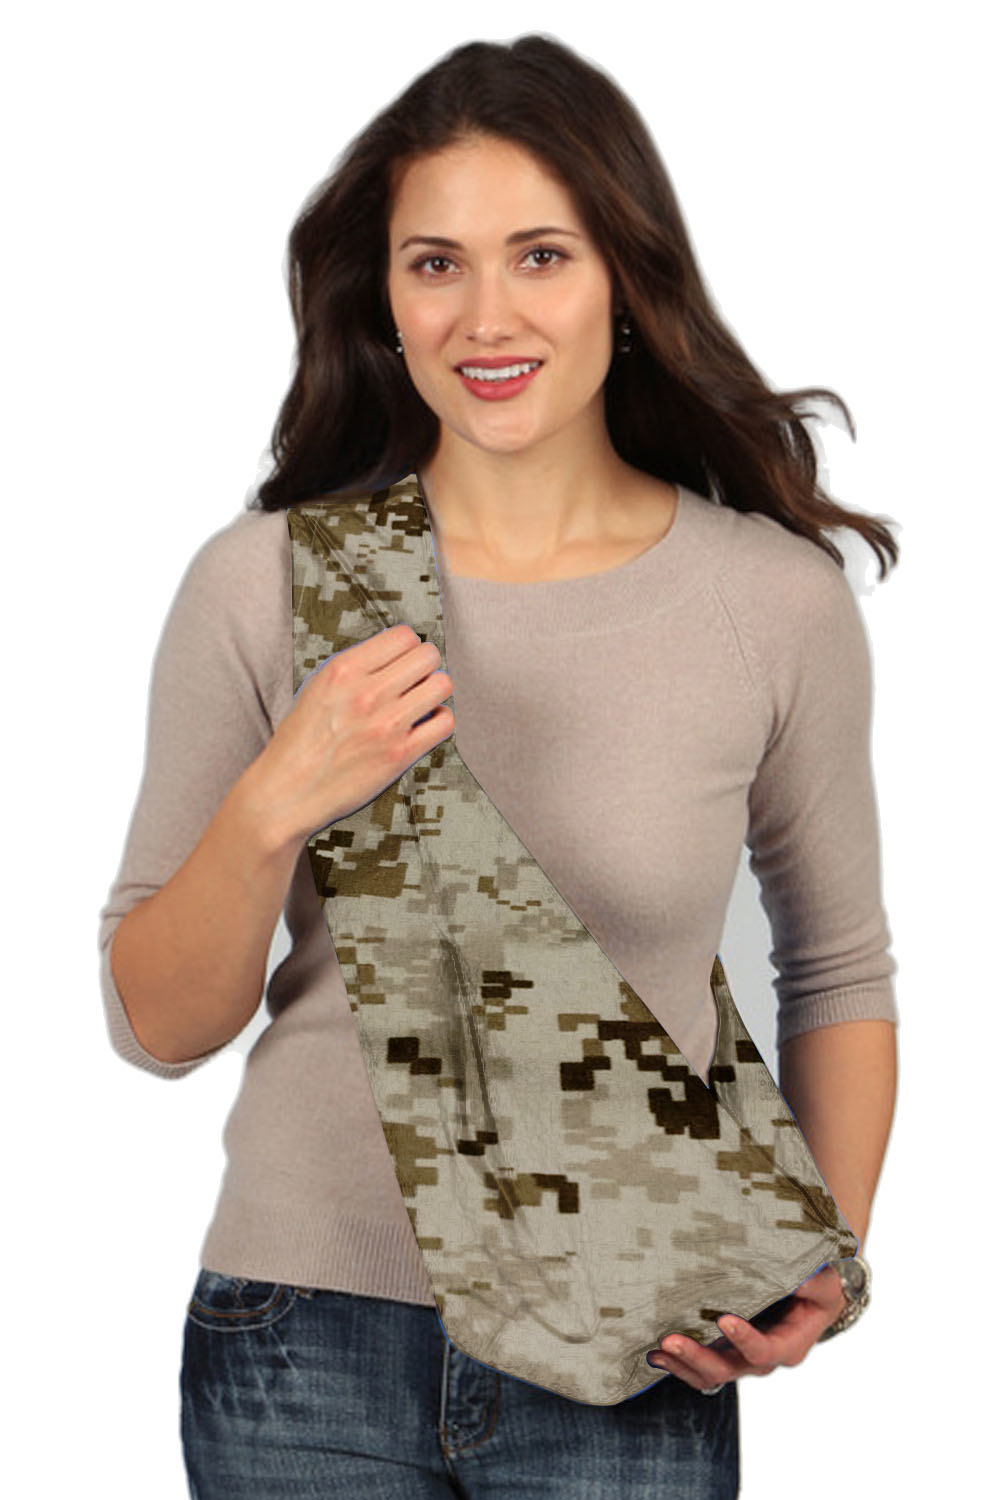 Karma Camouflage Military Soft Carrier Baby Sling, Brown by Karma Baby